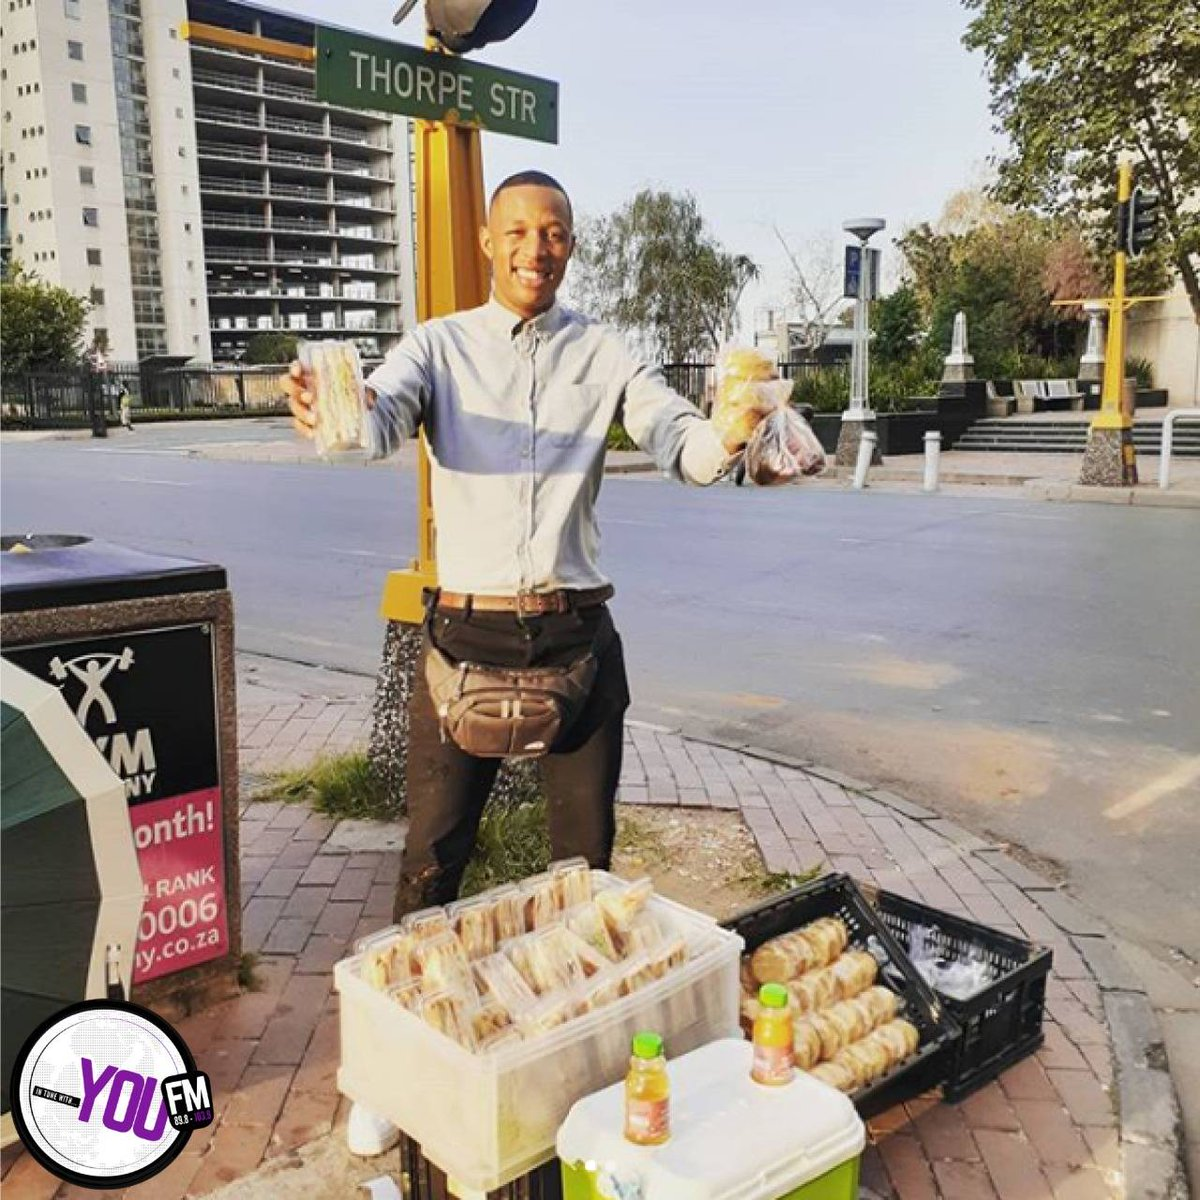 We will be chatting with Itumeleng @sandwich_kiing Lekomanyane, Founder of #SandwichNtonNtons  Stay In Tune with #YOUWithTheBoys @za_vibe @OG_KamoGEE @sbingelelo @Cashonradio   DSTV Channel 842   #CelebratingYOU  #YOUInspireUs